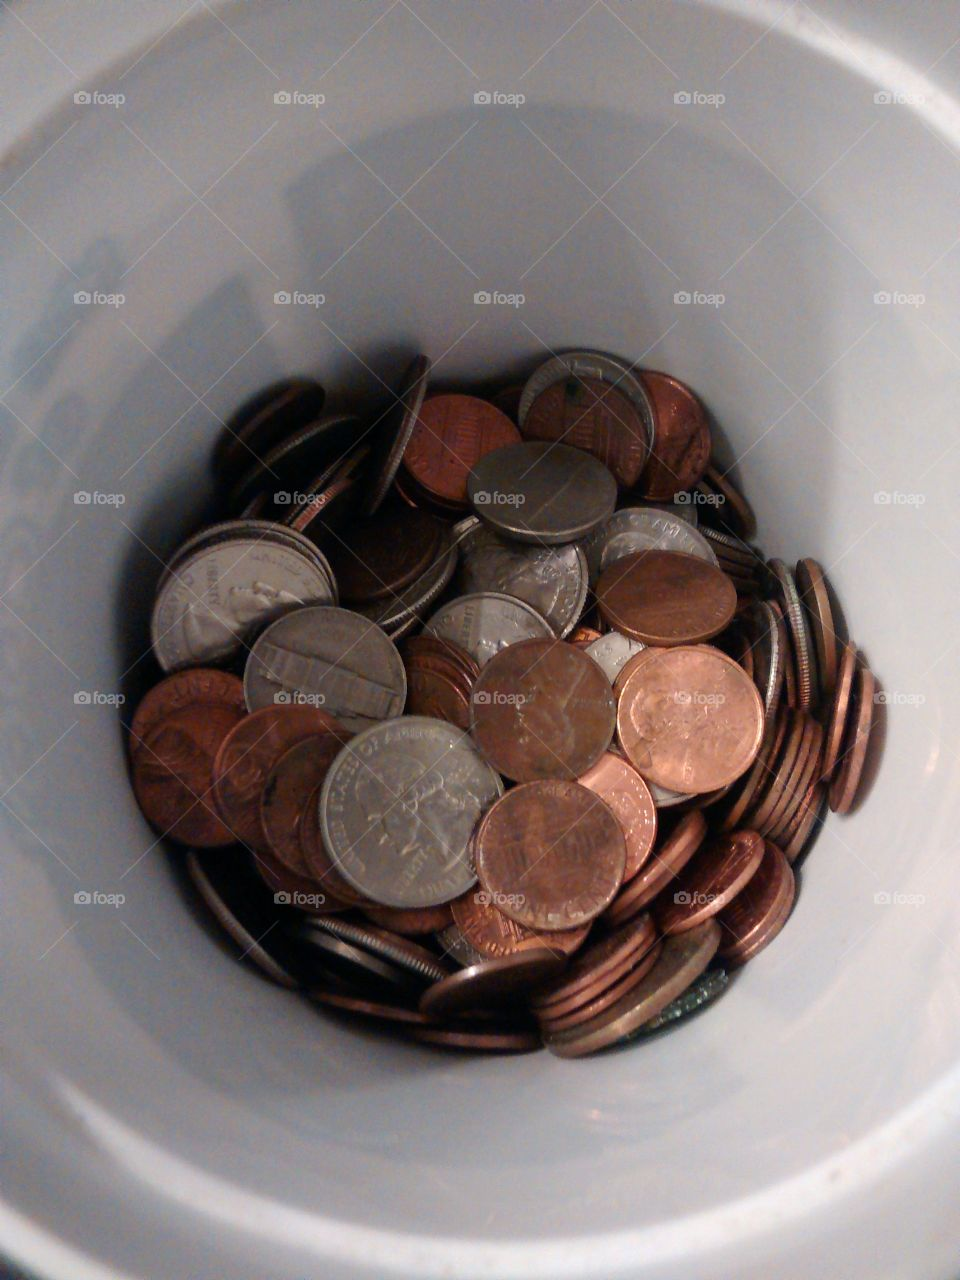 Cup full of coins